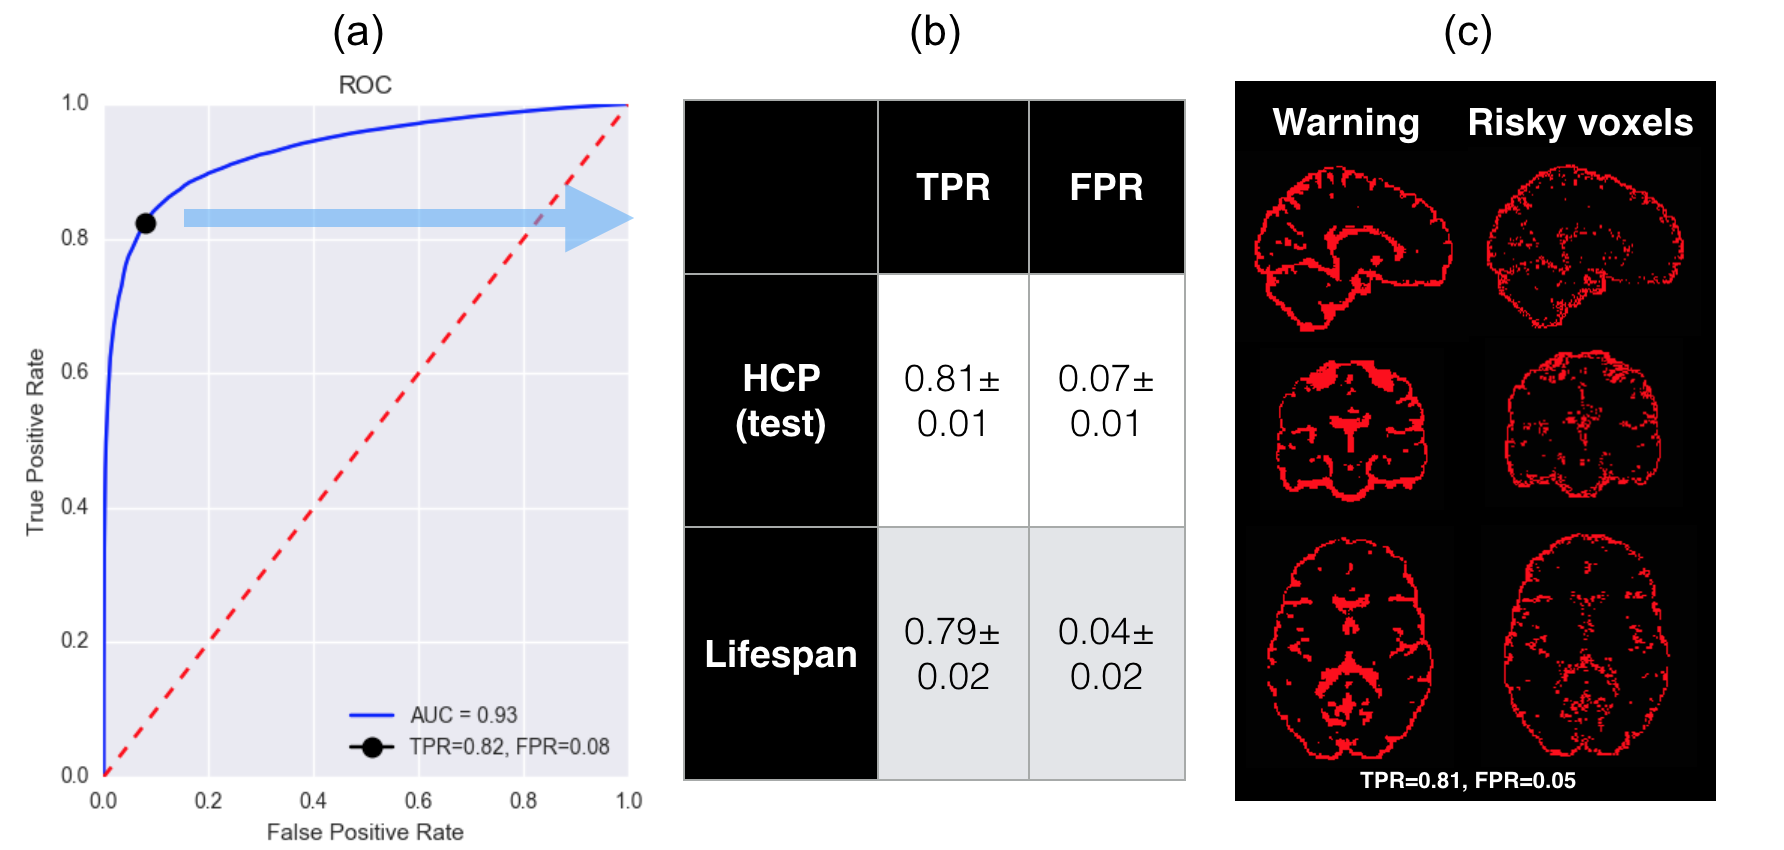 """Discrimination of """"safe"""" voxels in the predicted high-resolution MD map by thresholding on predictive uncertainty. Here a single 3D-ESPCN + Hetro. + Variational Dropout (I) model is used to quantify the predictive uncertainty over each image volume. (a) the ROC curve plots the true positive rate (TPR) against false positive rate (FPR) computed for a range of threshold values on the foreground voxels in the training subjects. Best threshold (black dot) was selected such that F1 score is maximised and is employed to separate """"safe"""" voxels from """"risky"""" ones; (b) the average TPR and FPR over the 16 test HCP subjects and the 16 Lifespan subjects are shown; (c) an example visualisation of the """"ground truth"""" safe (black) and risky (red) voxels on a Lifespan subject along with the corresponding classification results denoted as """"warning""""."""